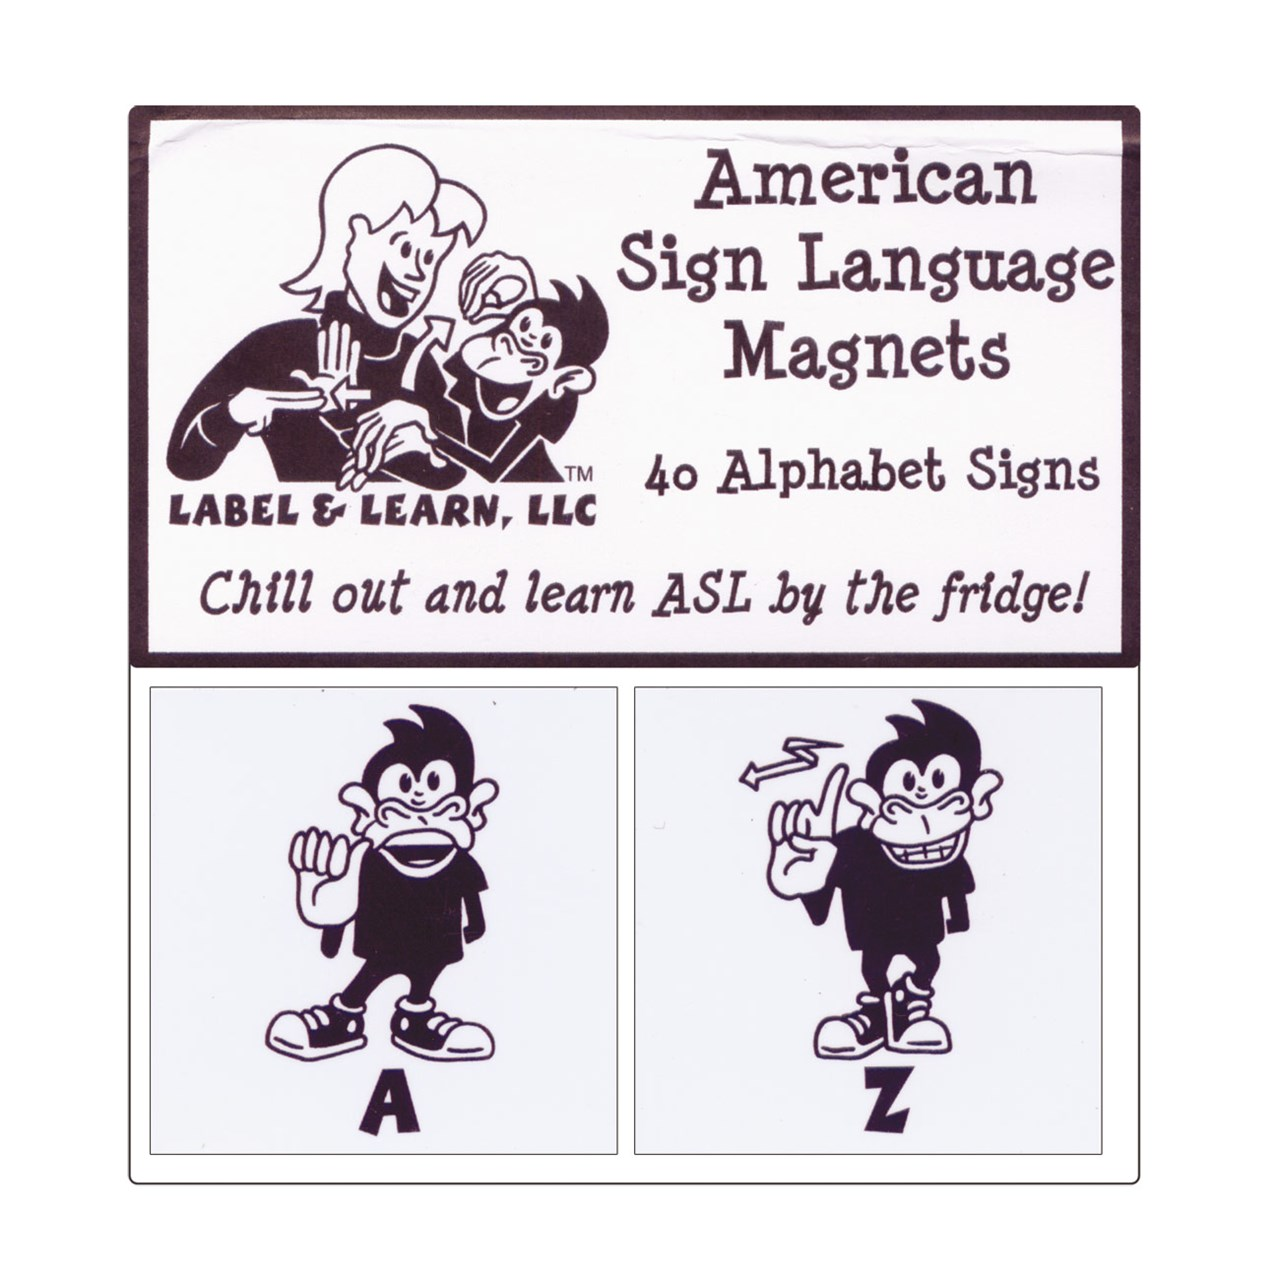 American Sign Language Magnets Set Of 40 Alpha